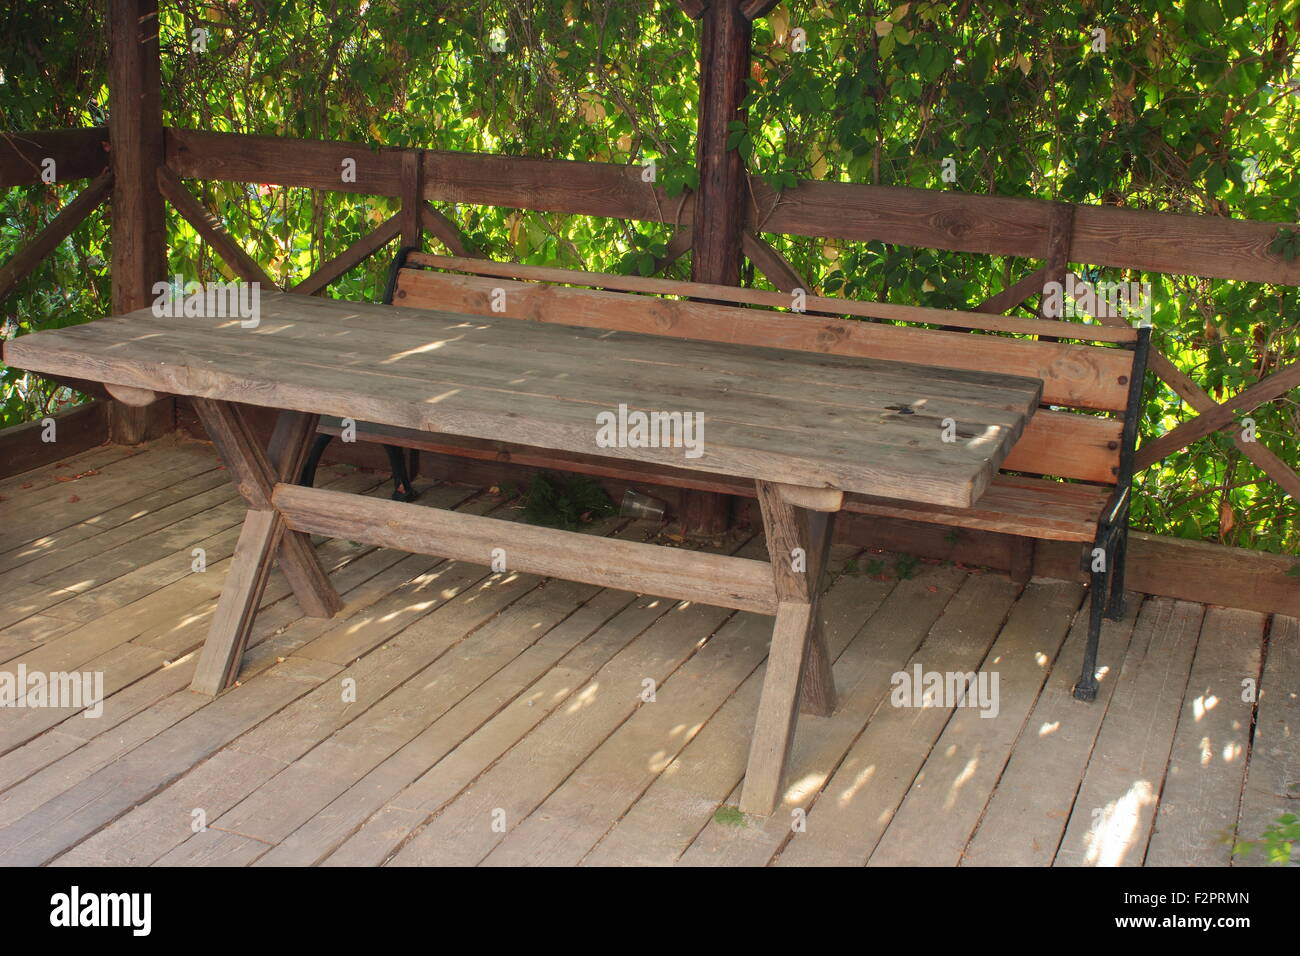 Super There Are Benches In The Gazebo With A Table For Rest Stock Ibusinesslaw Wood Chair Design Ideas Ibusinesslaworg